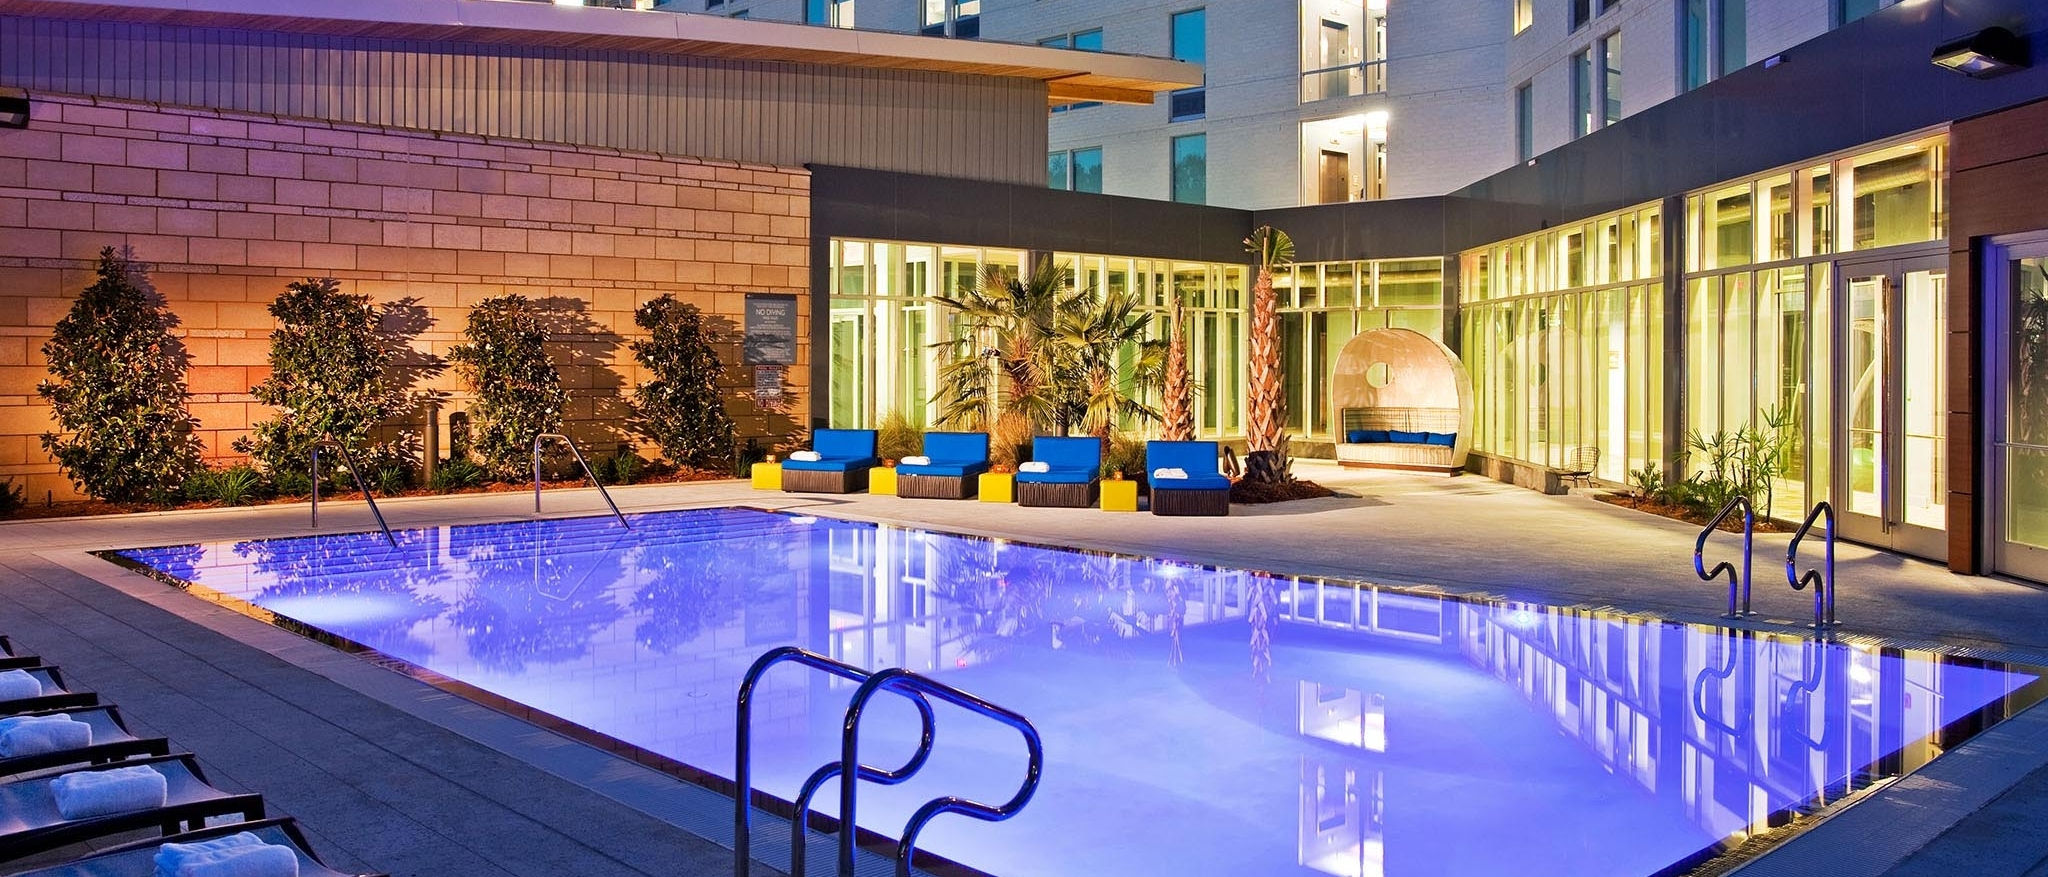 Aloft Jacksonville Tapestry Park - Splash Pool